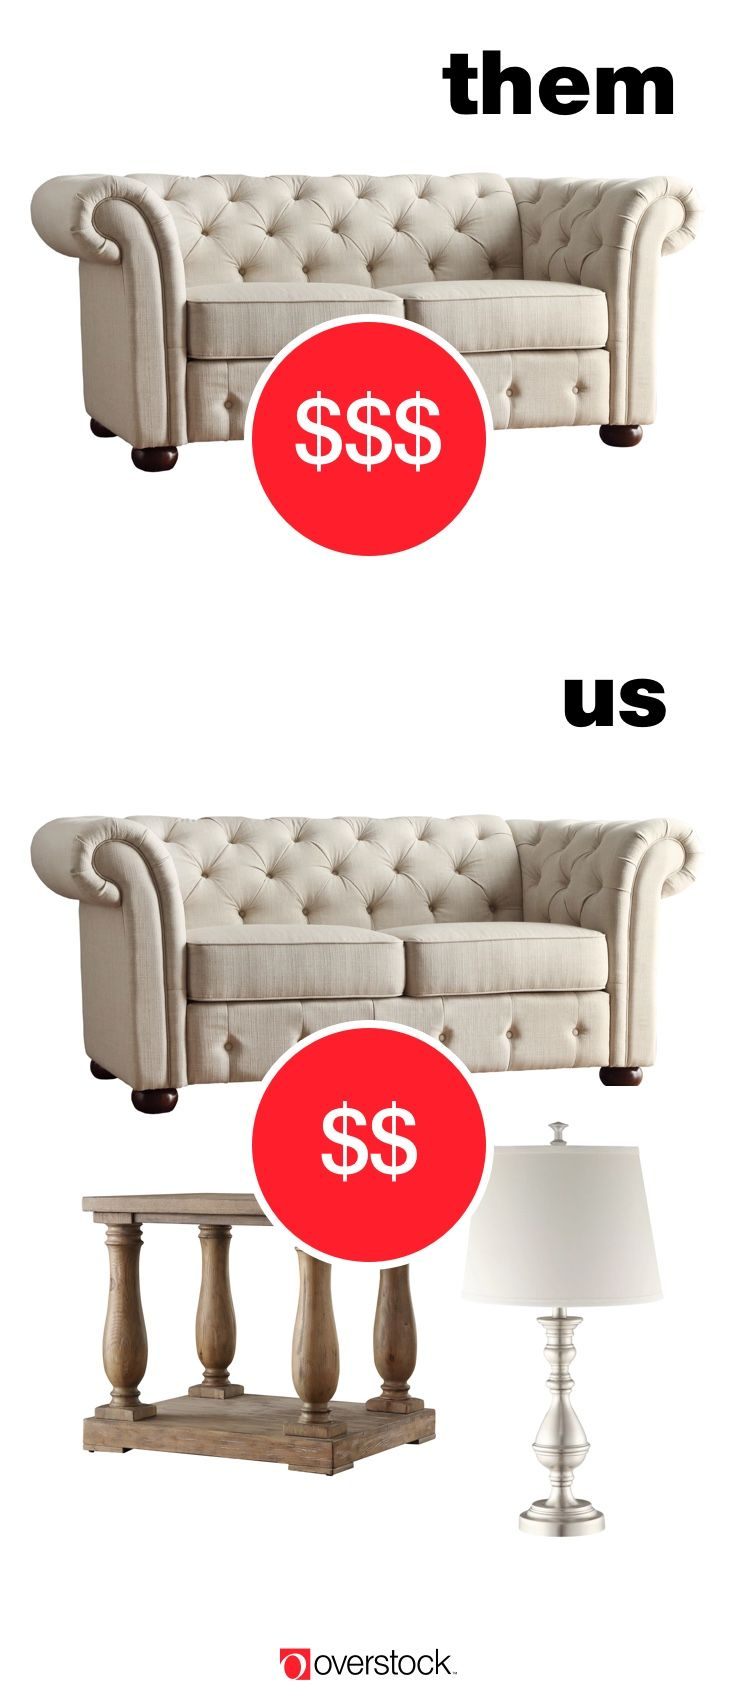 Find everything you need to give your bedroom a refresh at Overstock.com. Shop thousands of products and beautiful new furniture at the lowest prices!